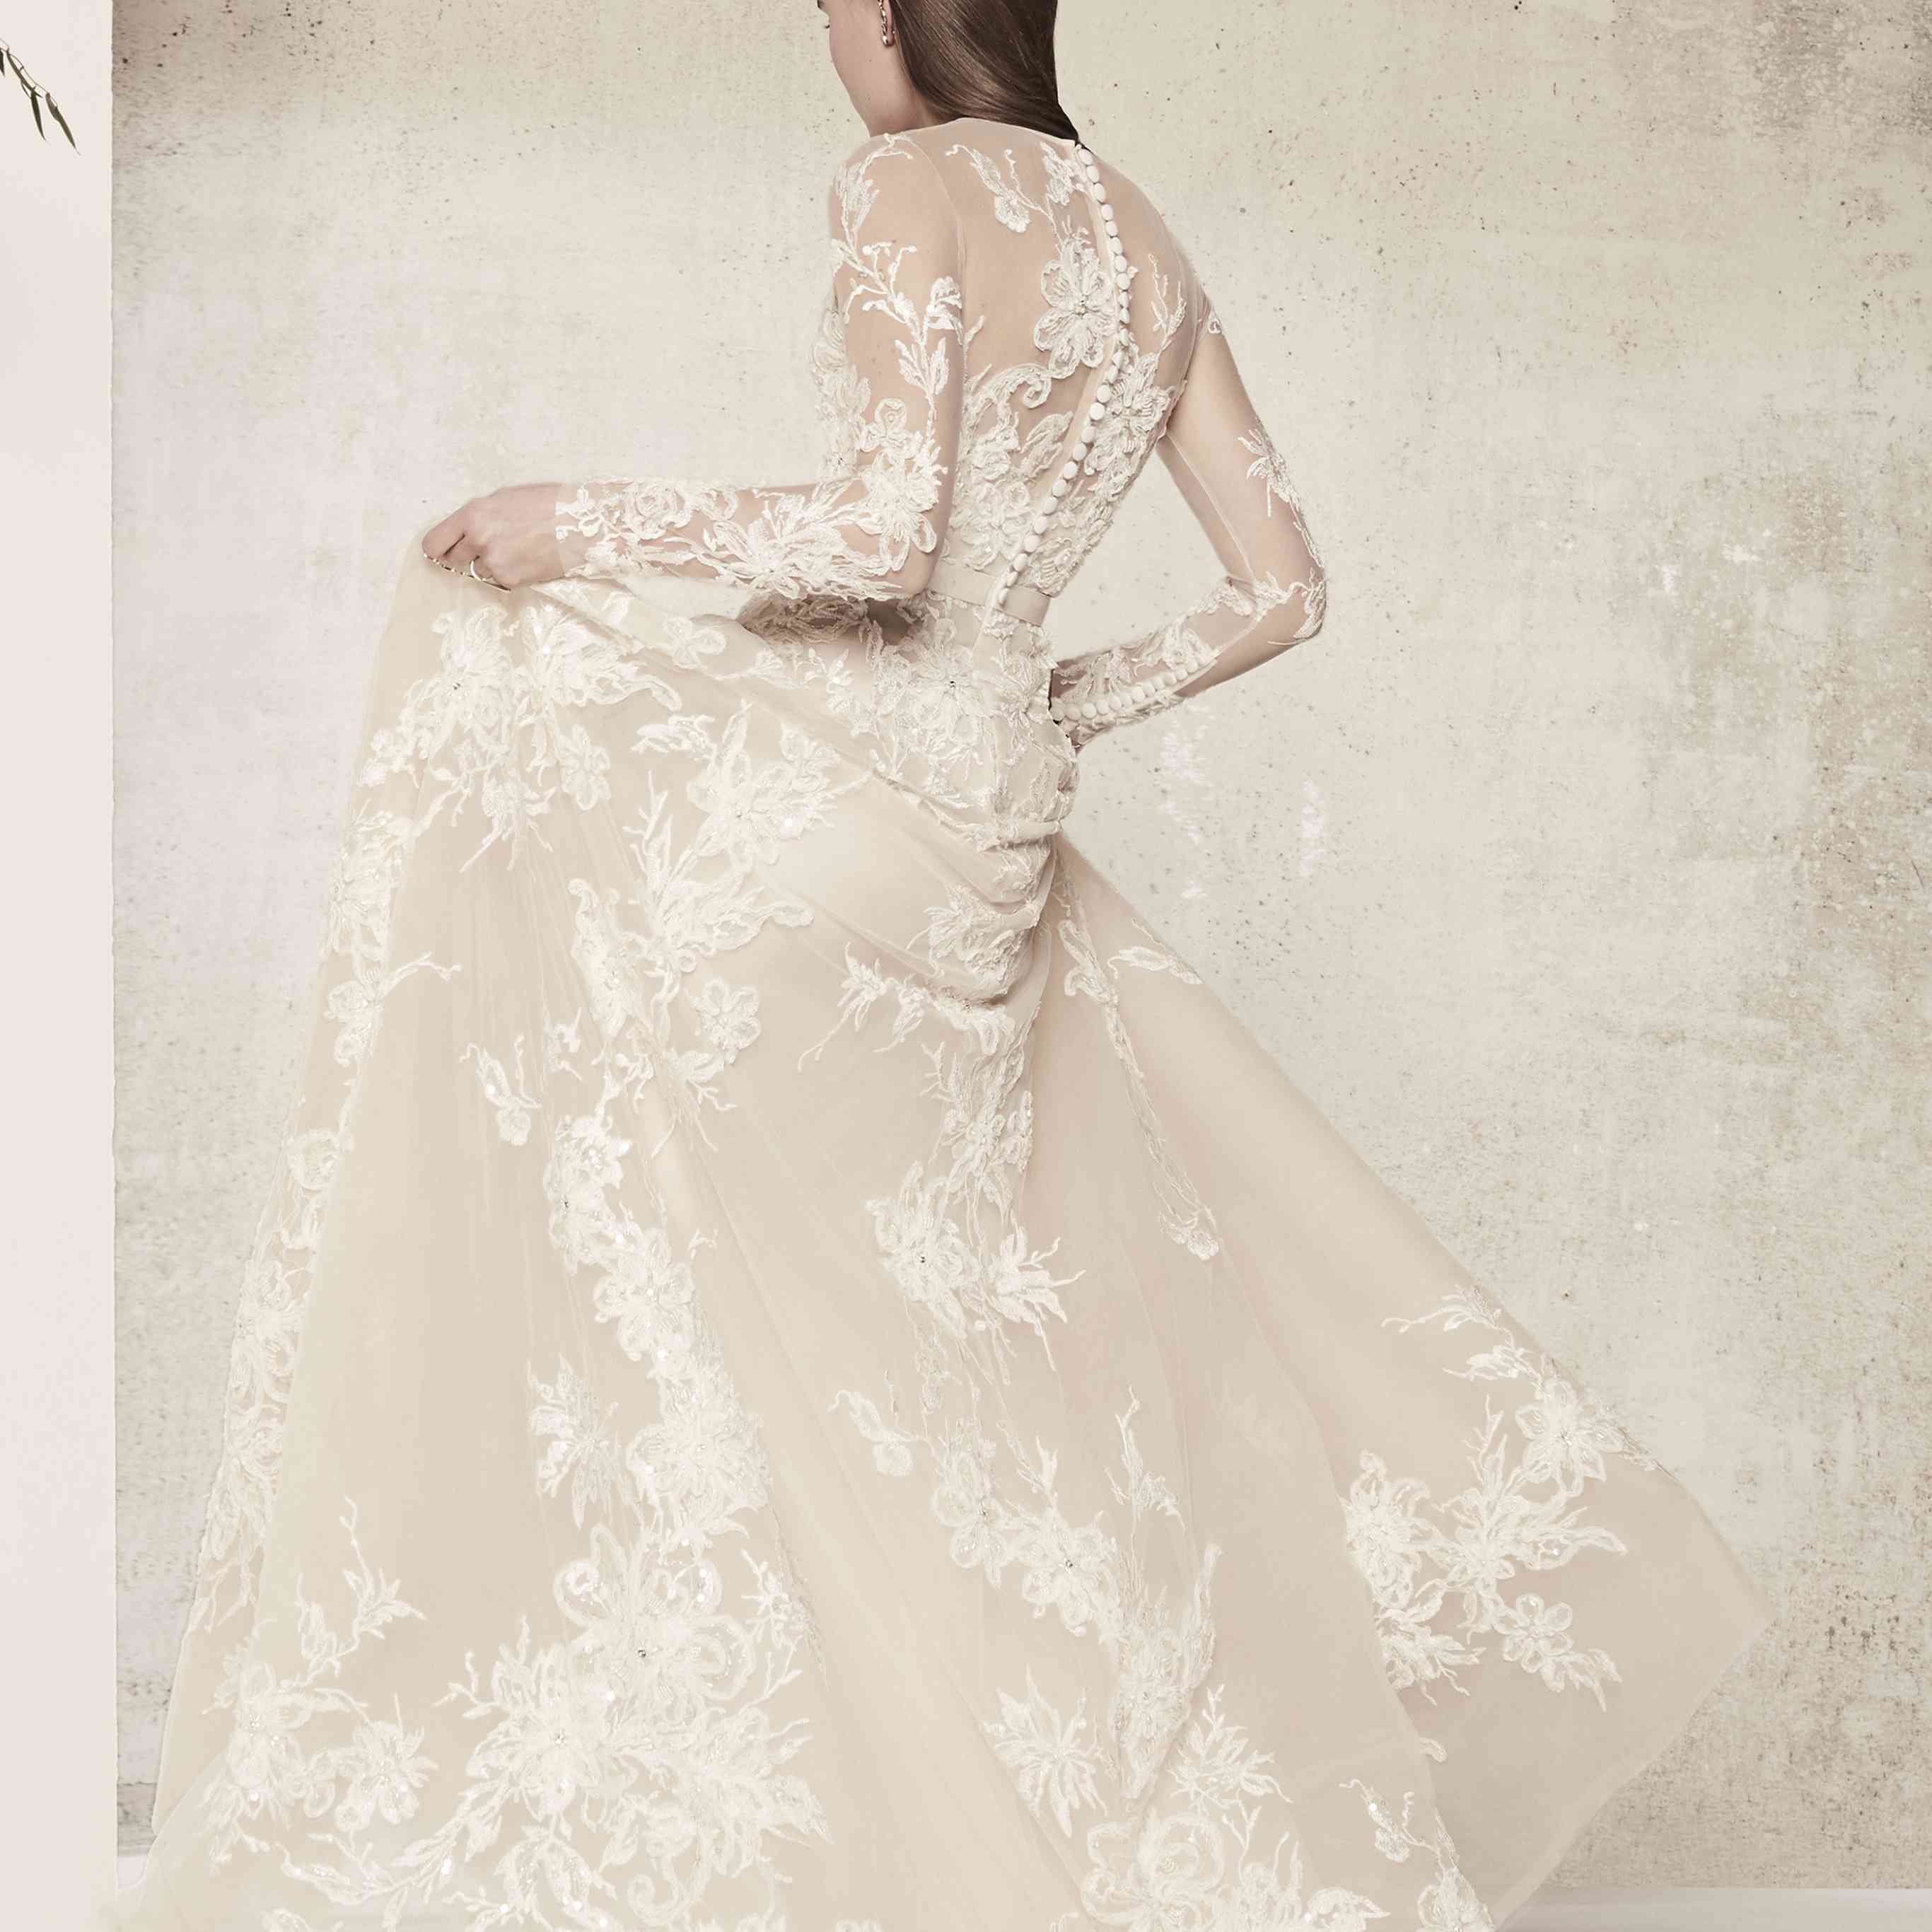 How To Choose Your Dream Wedding Dress 70 Things To Know